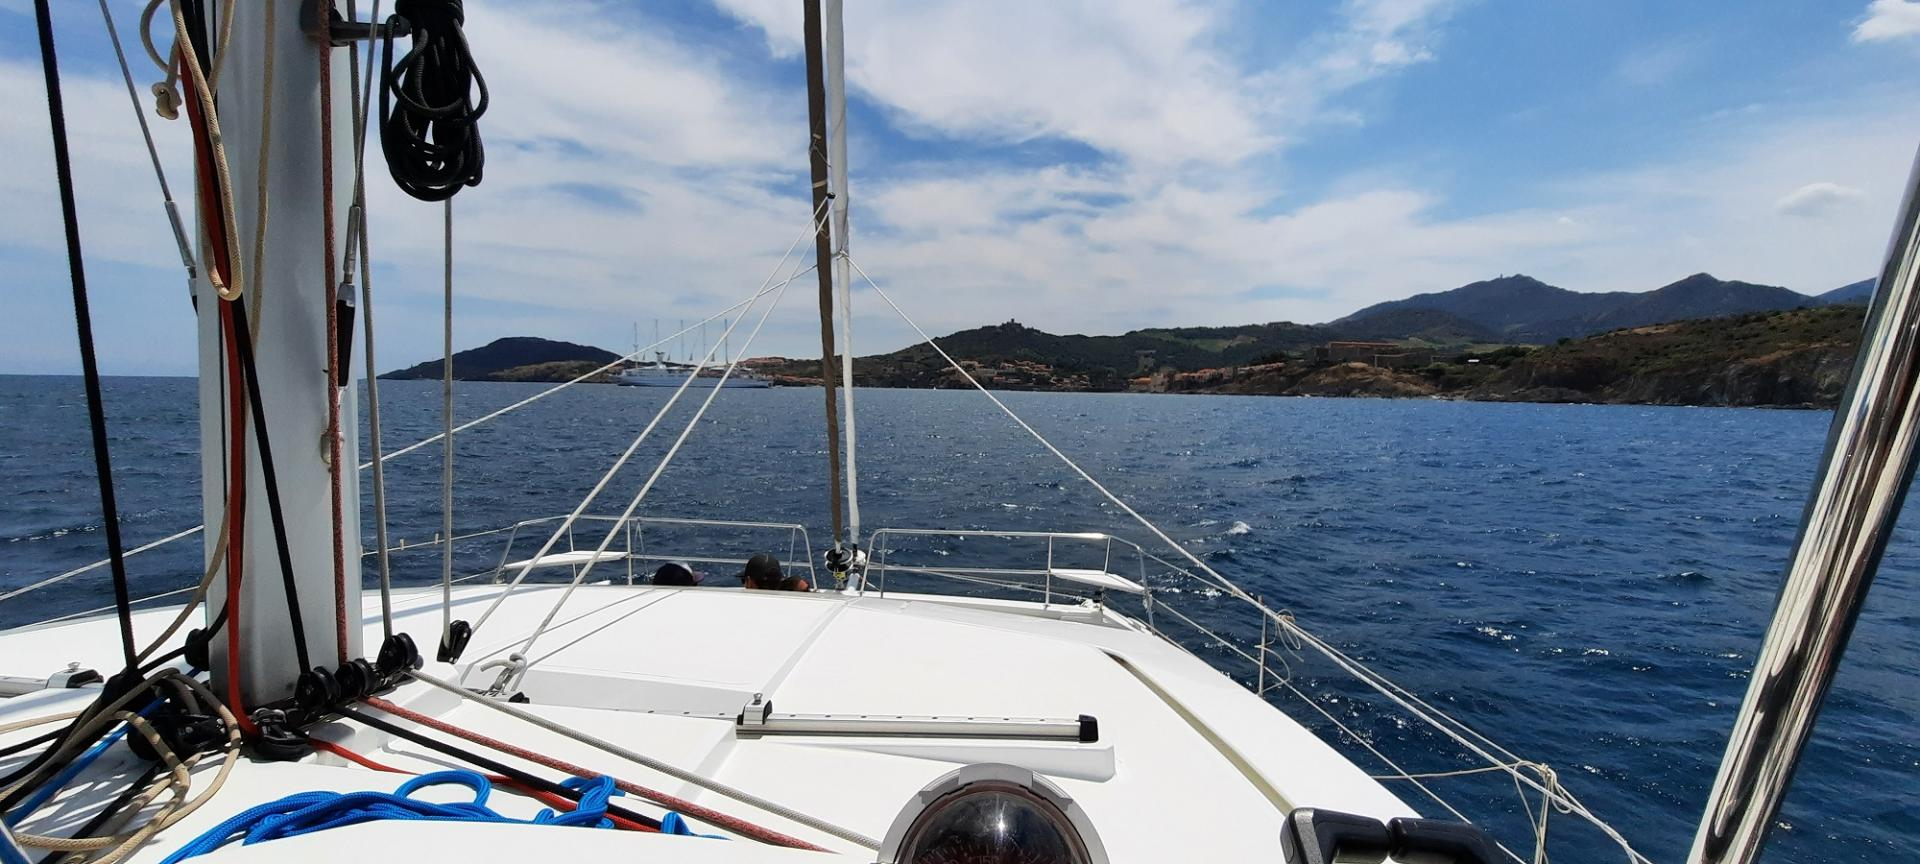 Bali 4 1 with club med 2 1